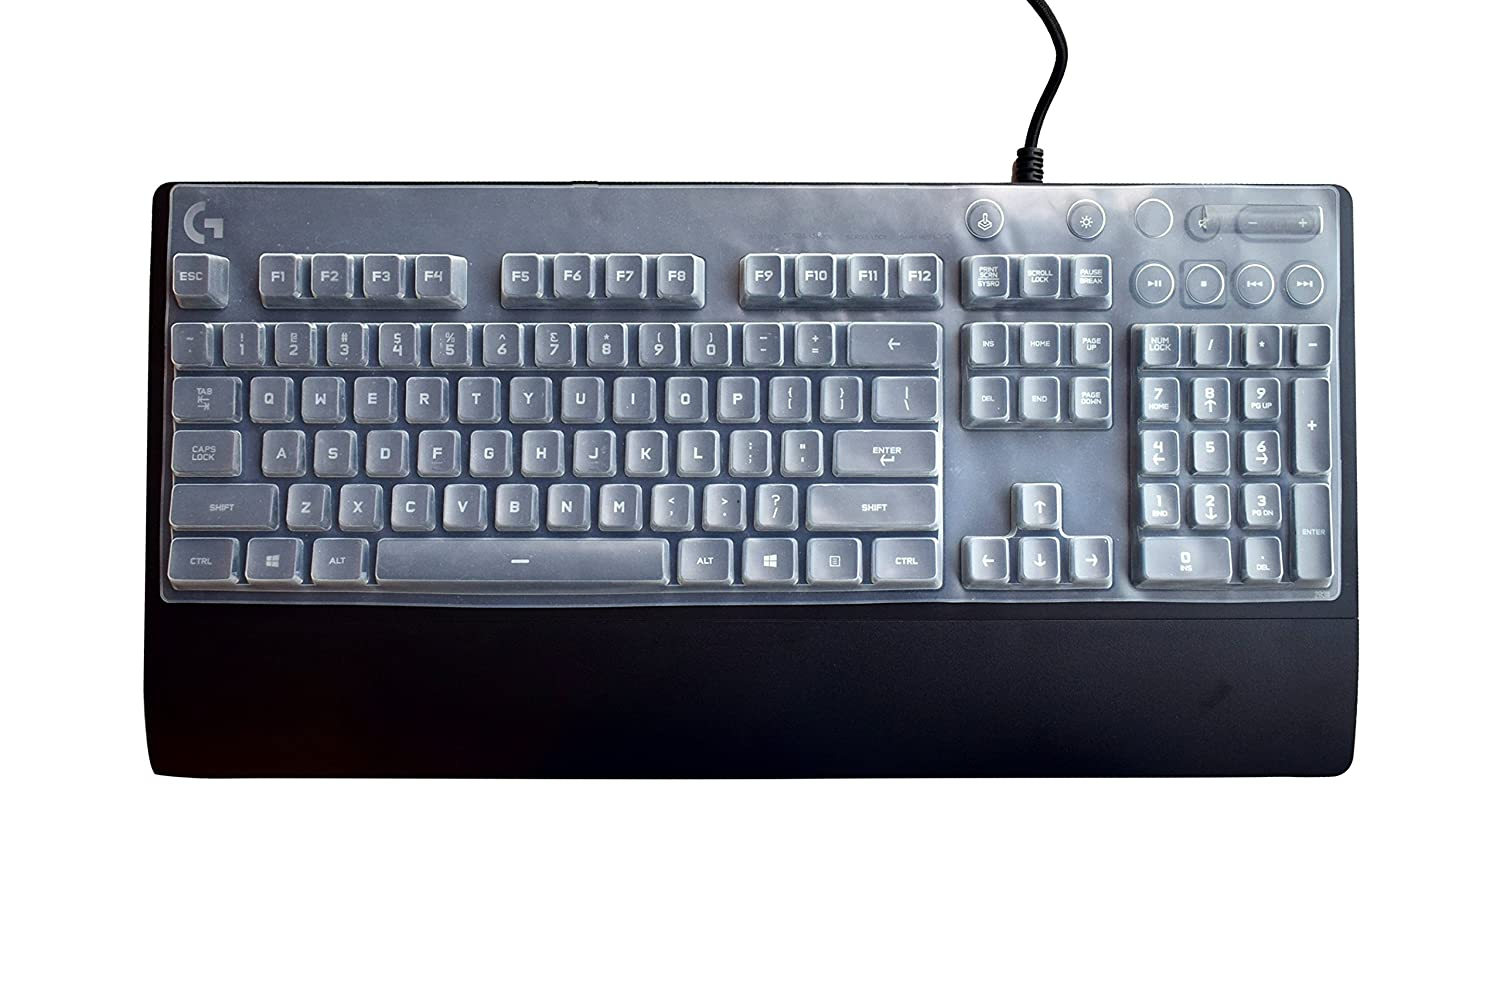 7e1acb19f46 Leze - Ultra Thin Keyboard Cover Protector for Logitech G810 Orion Spectrum  RGB Mechanical Gaming Keyboard - Clear: Amazon.ca: Electronics